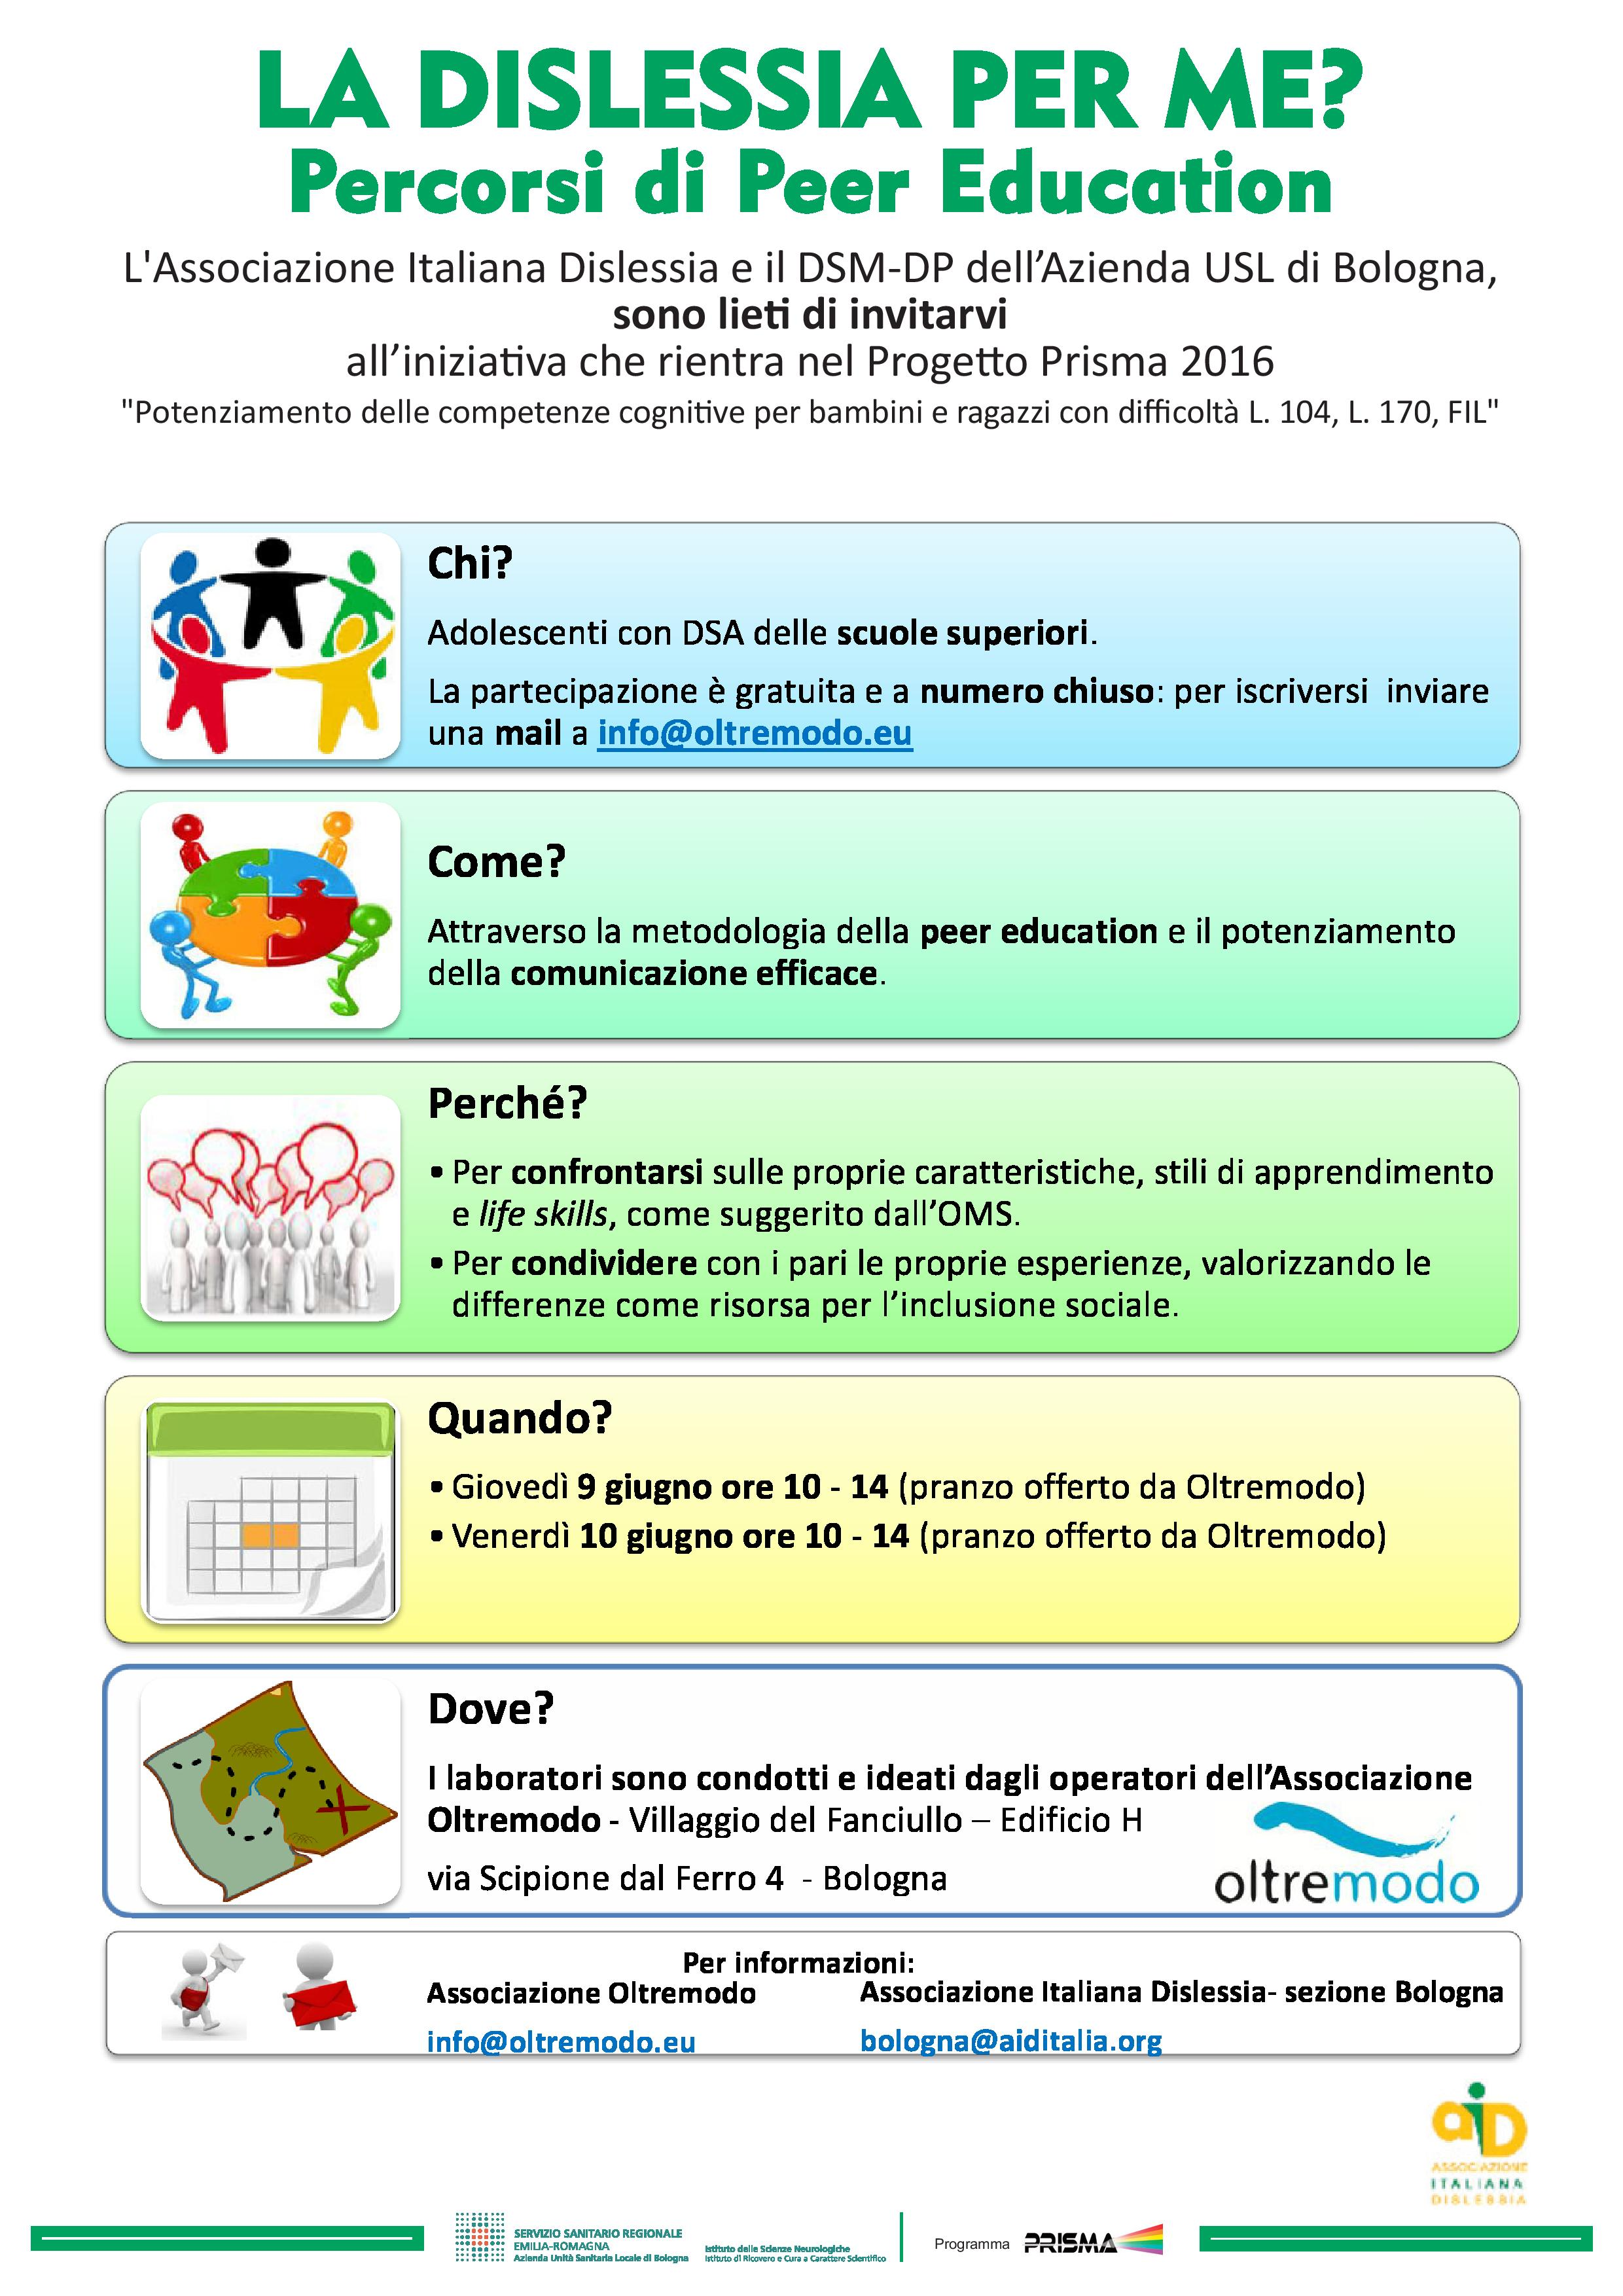 LA DISLESSIA PER ME? Percorsi di Peer Education